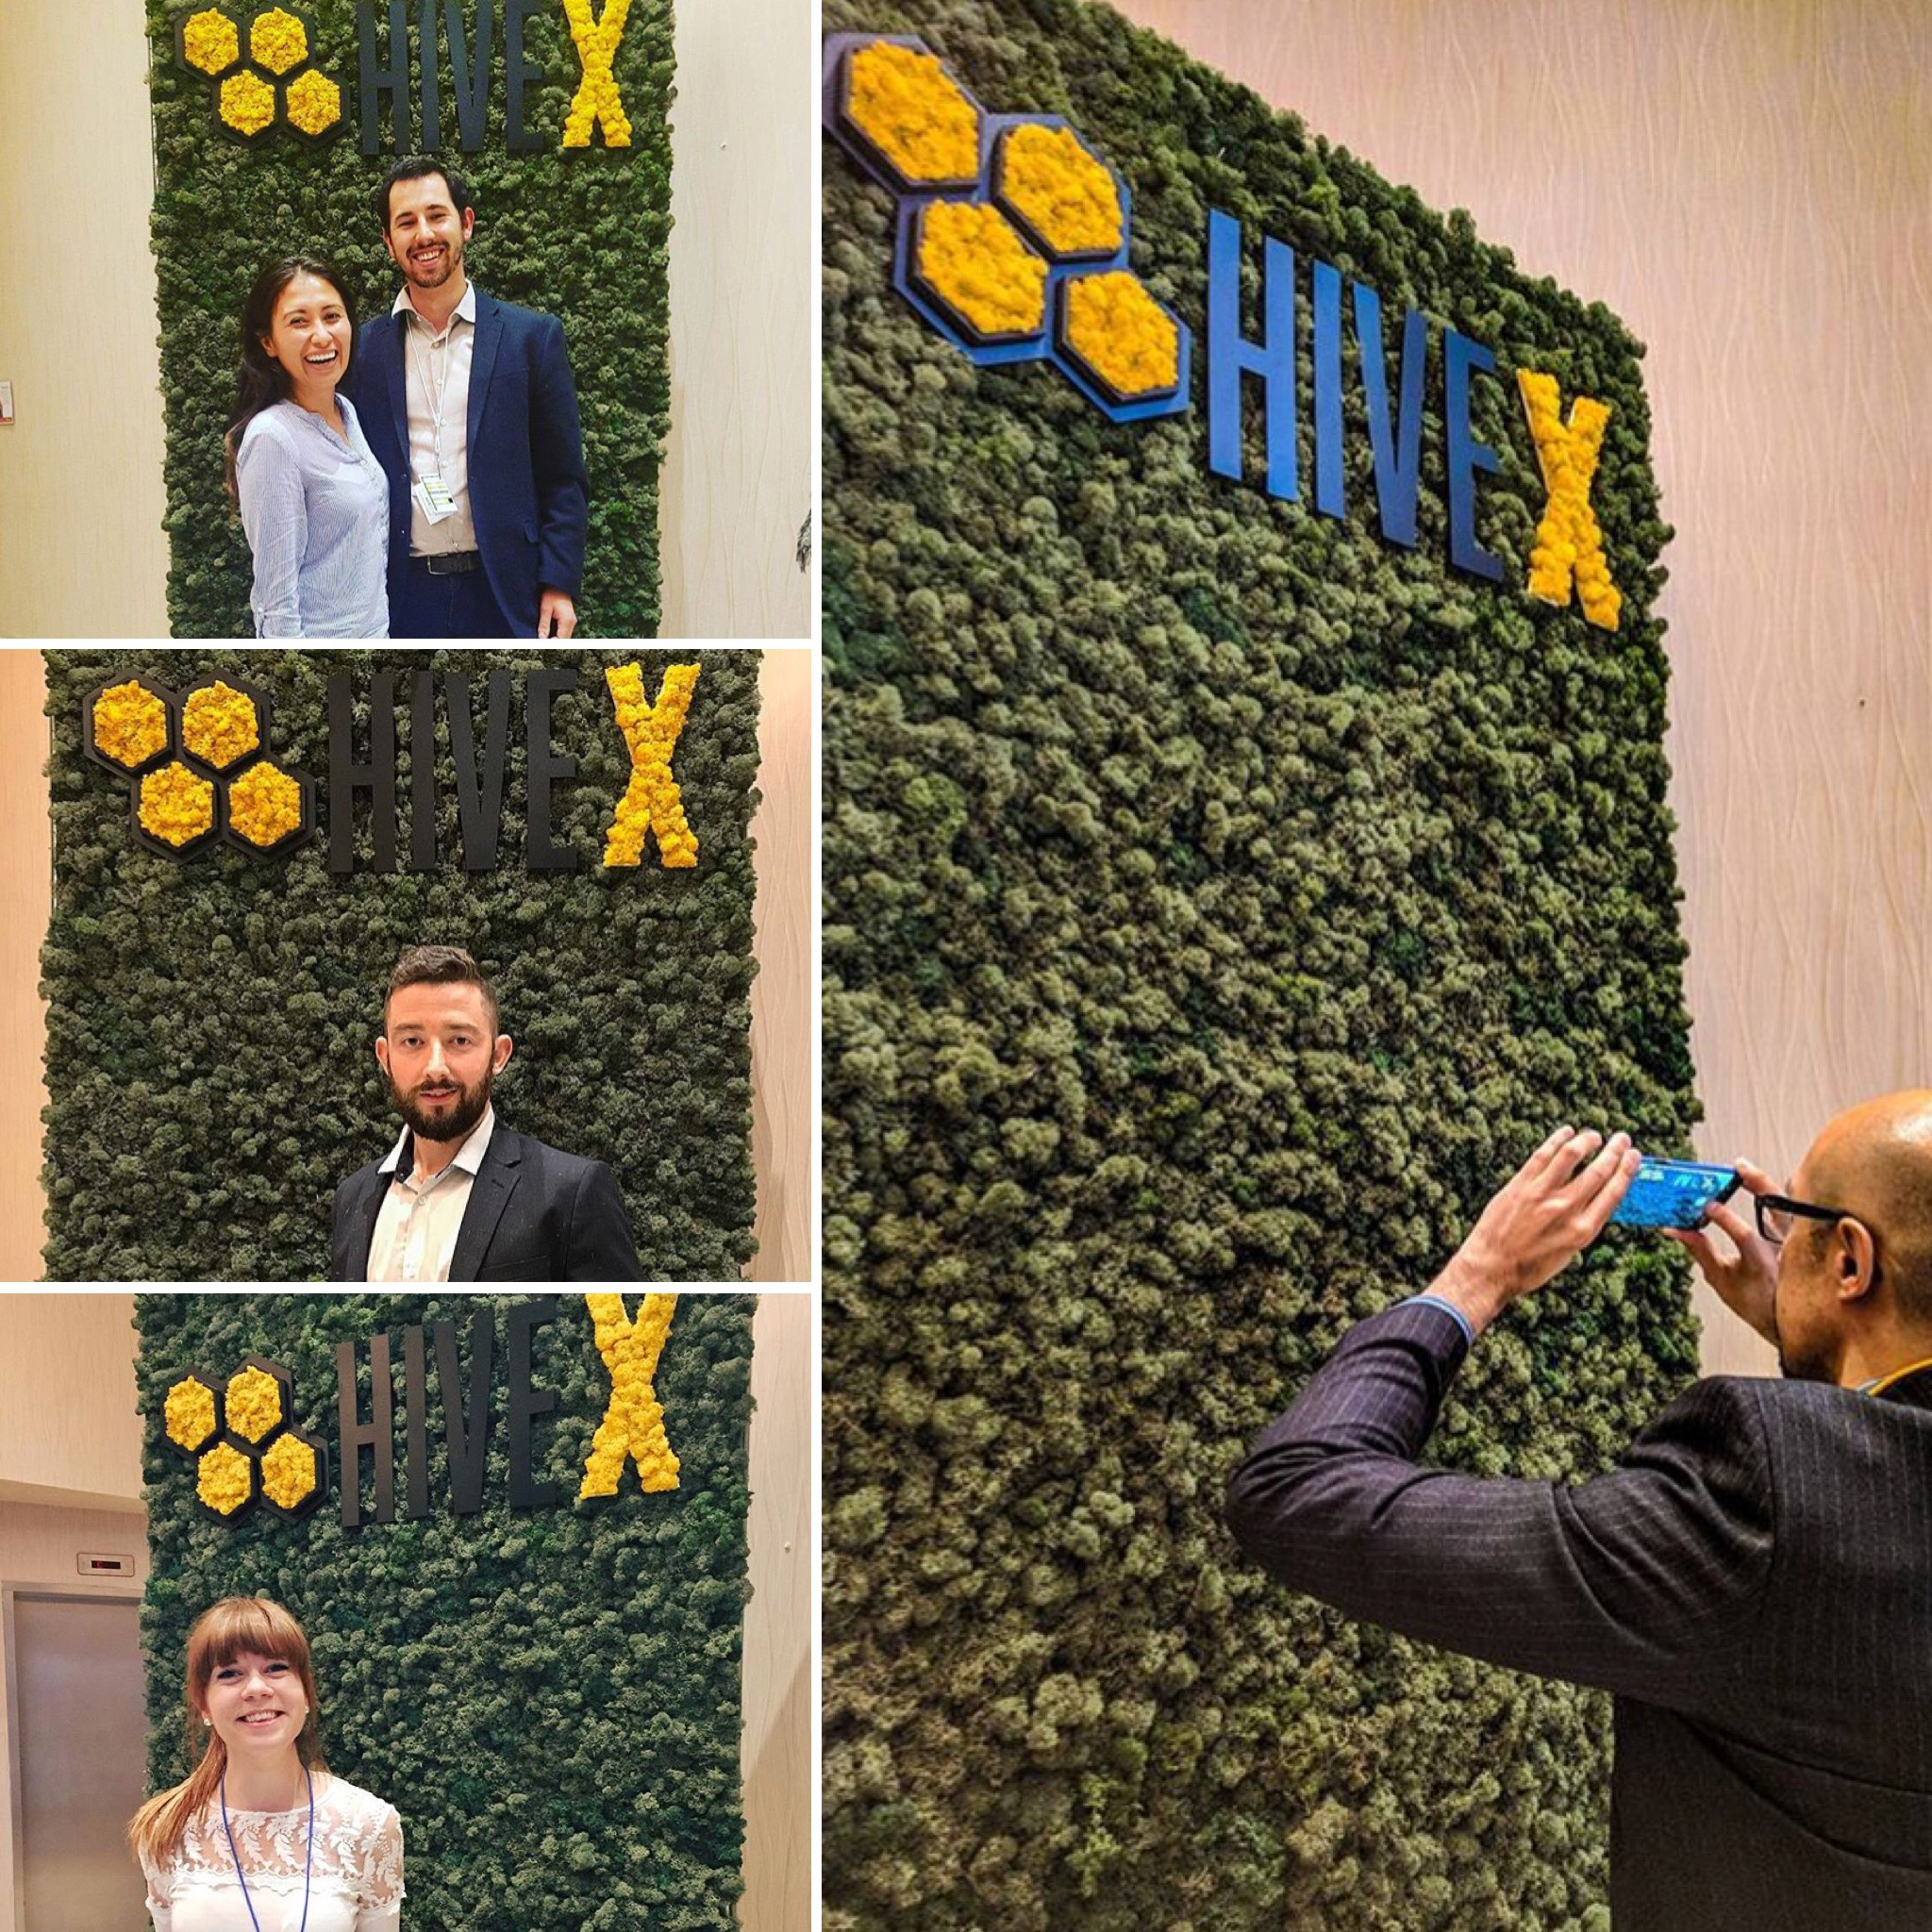 Rentable Greenteriors photo wall, pictures from Hivex 2017 Conference in Hamilton